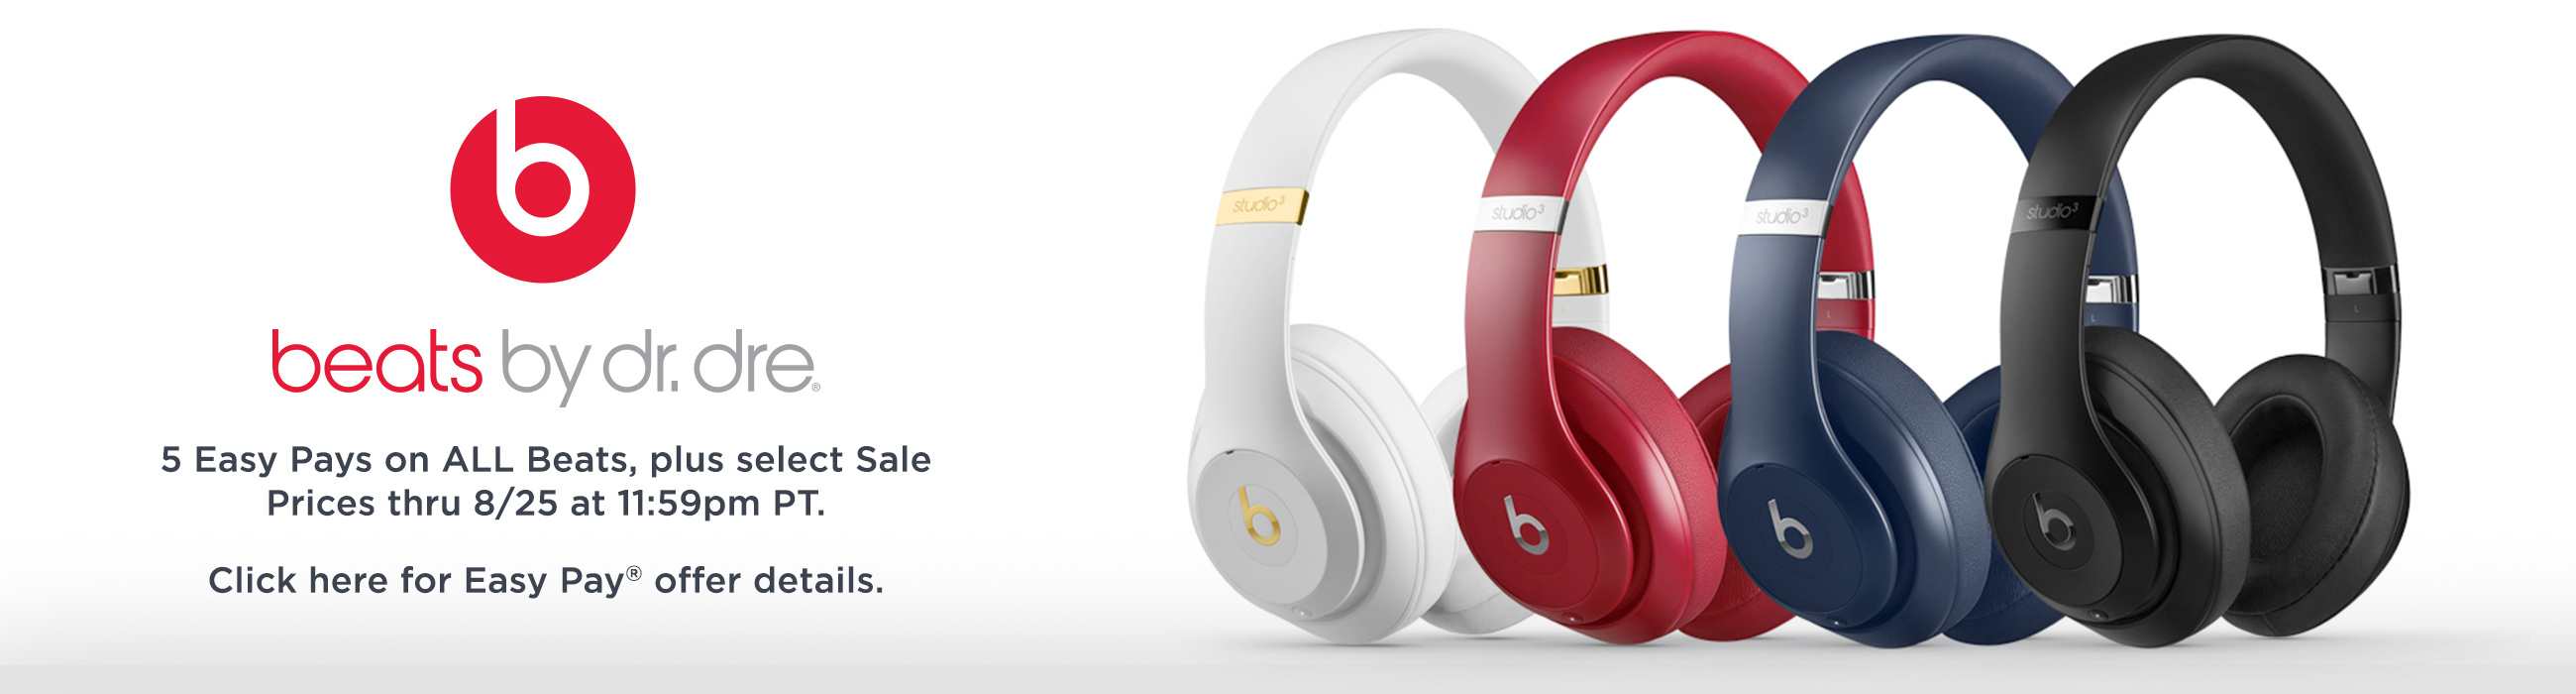 5 Easy Pays on ALL Beats, plus select Sale Prices thru 8/25 at 11:59pm PT.  Click here for Easy Pay® offer details.